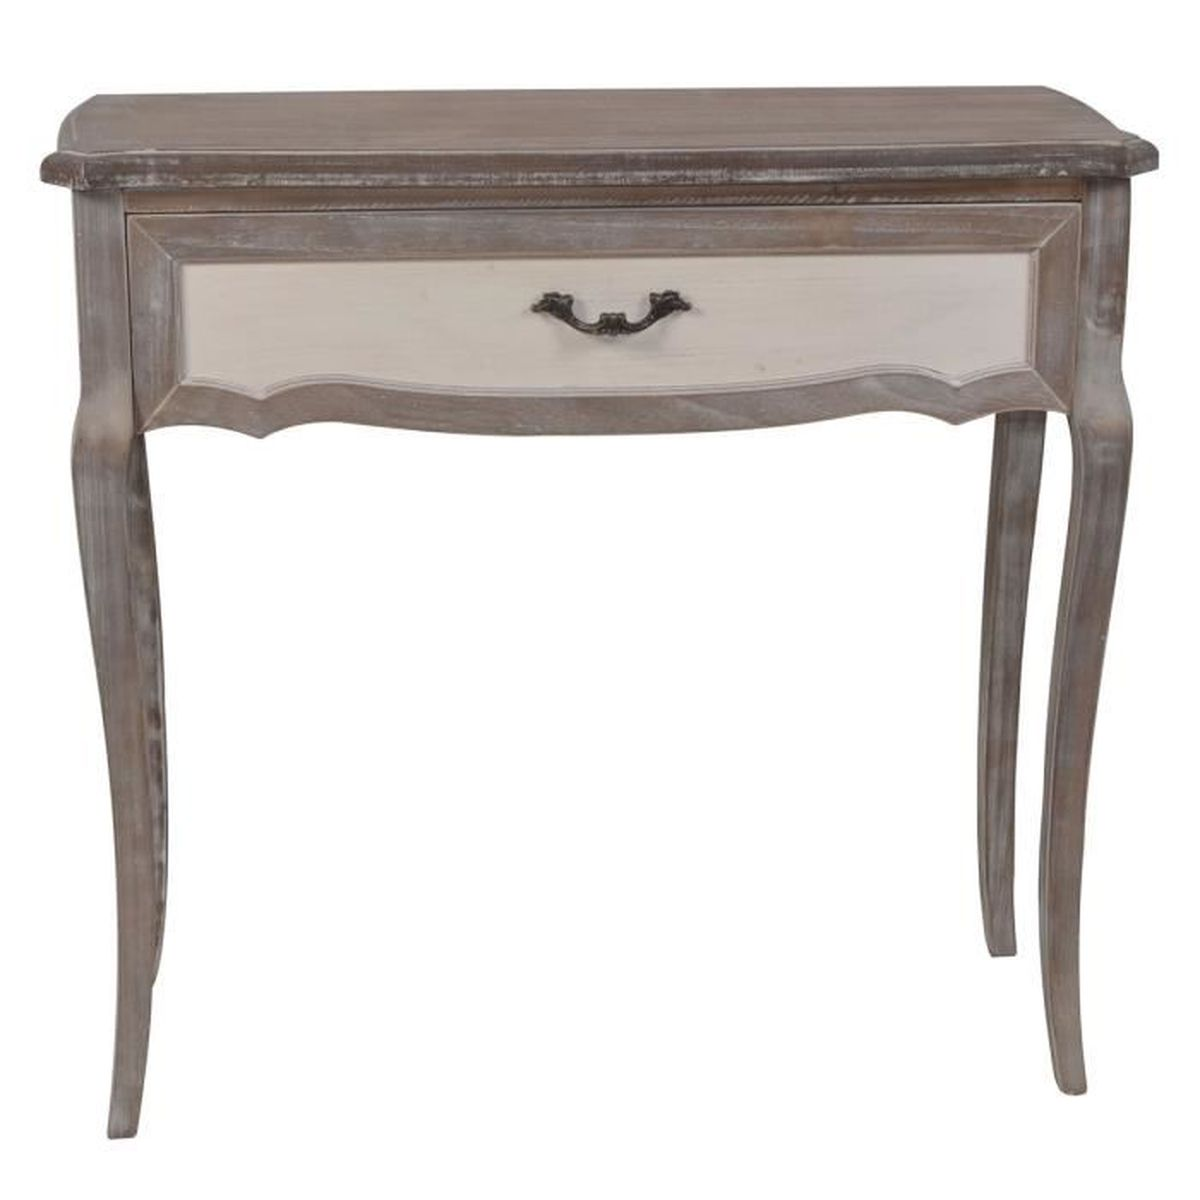 console r verie 80 cm 1 tiroir gris achat vente console console r verie 80 cm 1 tiro. Black Bedroom Furniture Sets. Home Design Ideas